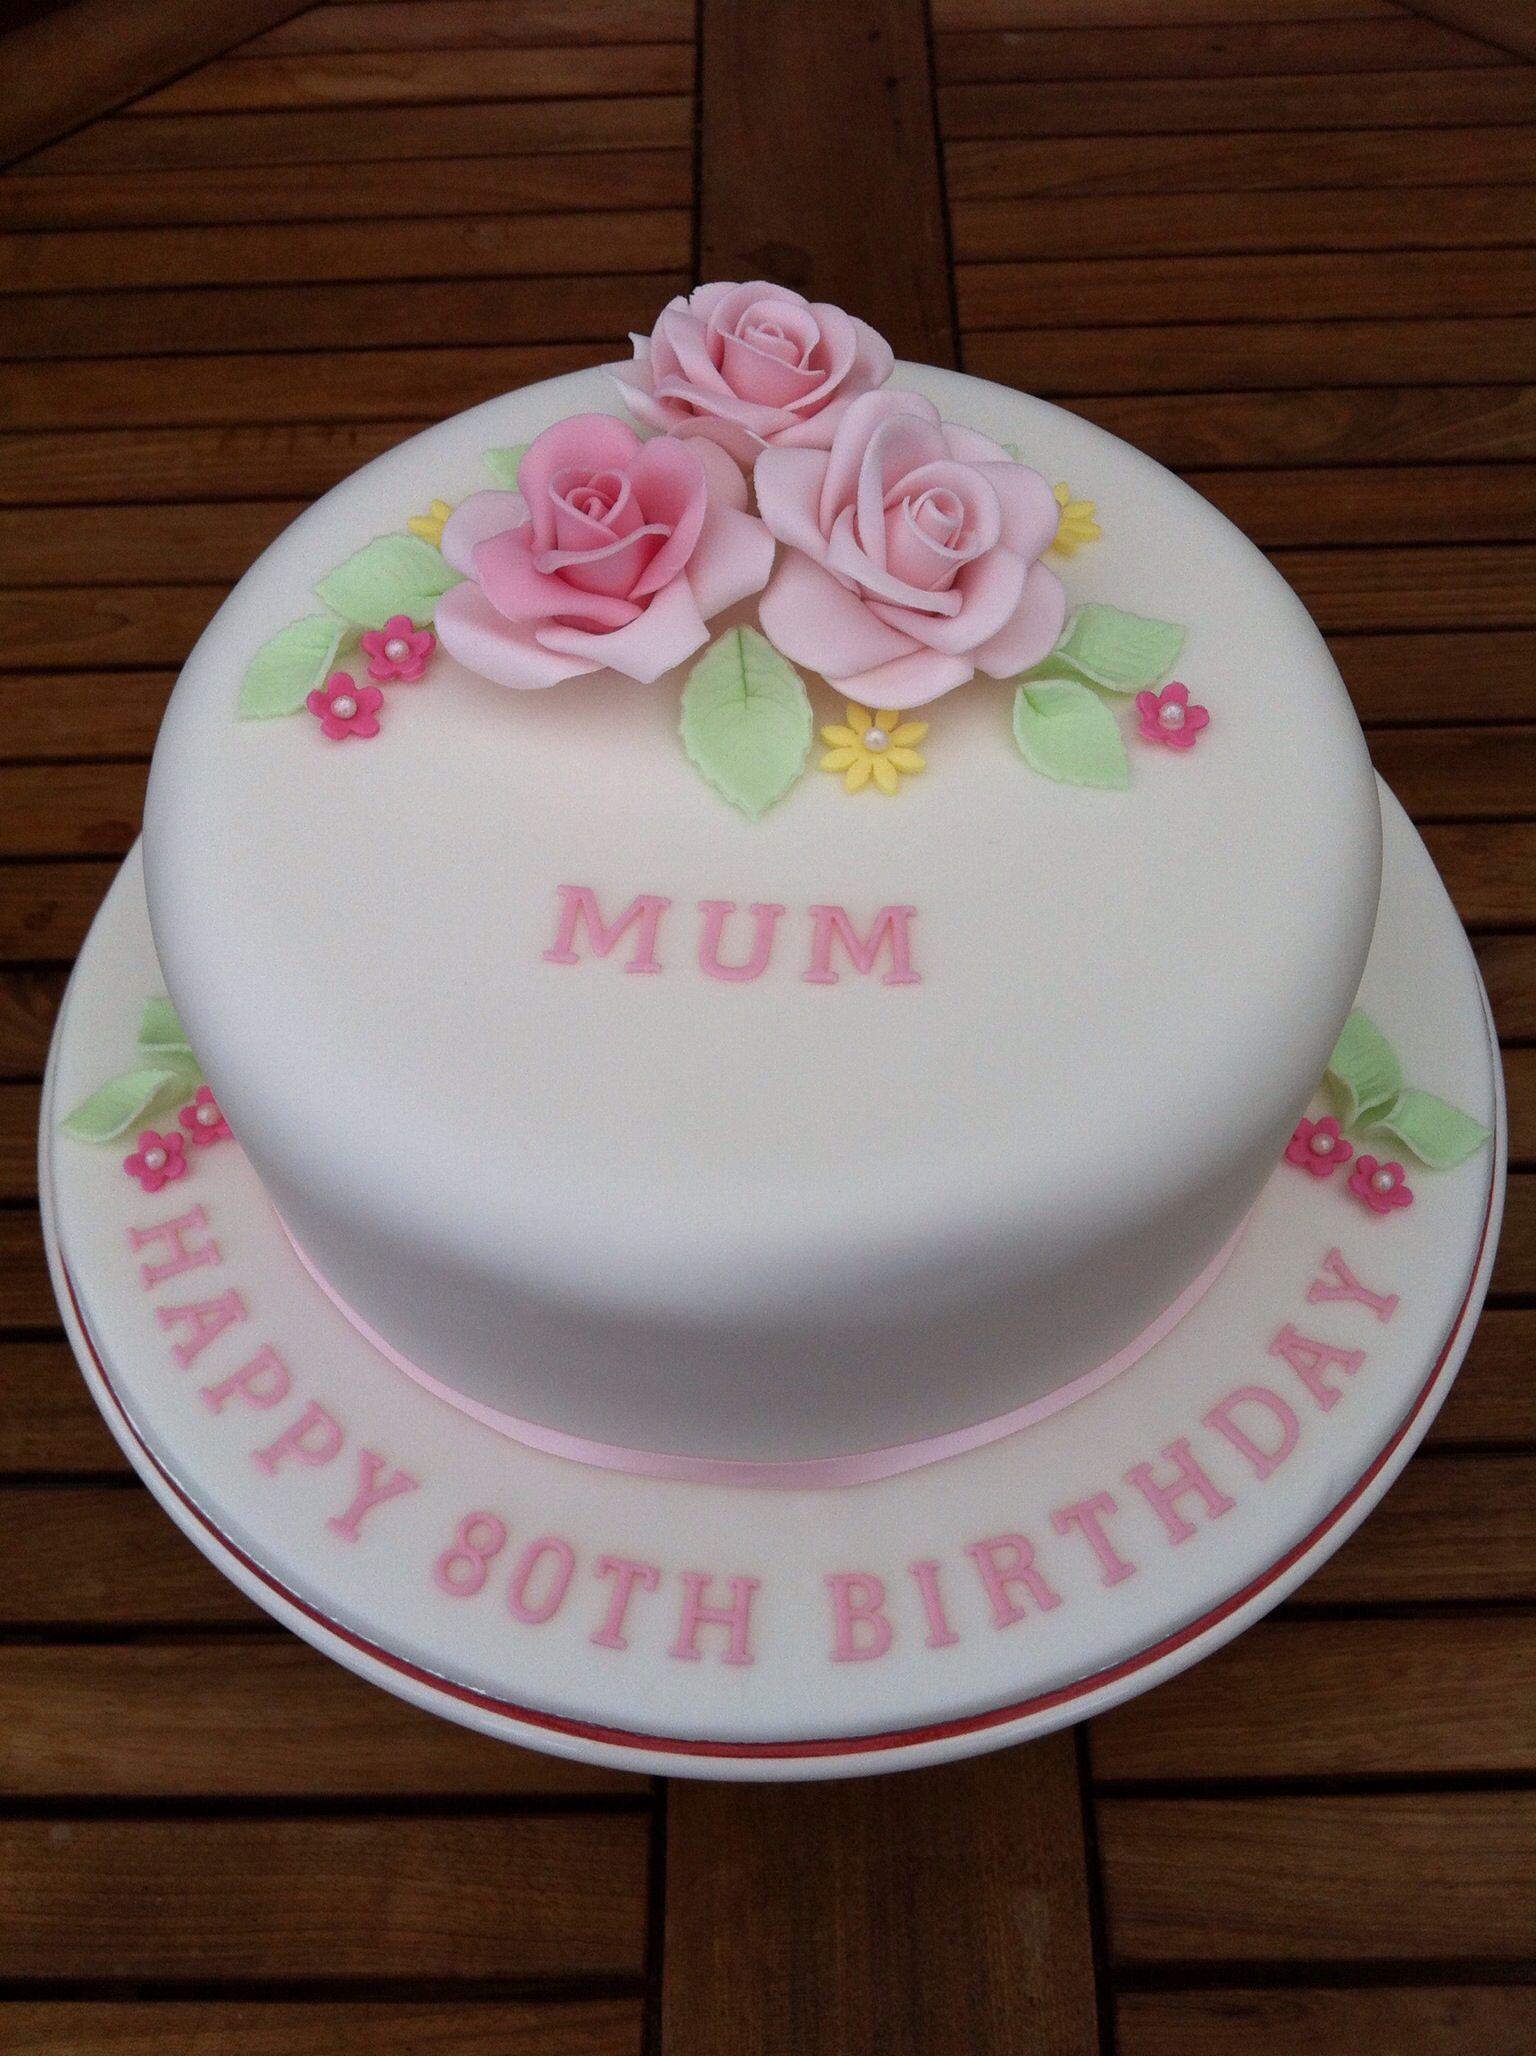 th birthday cake also best traditional ideas images decorating cakes rh pinterest